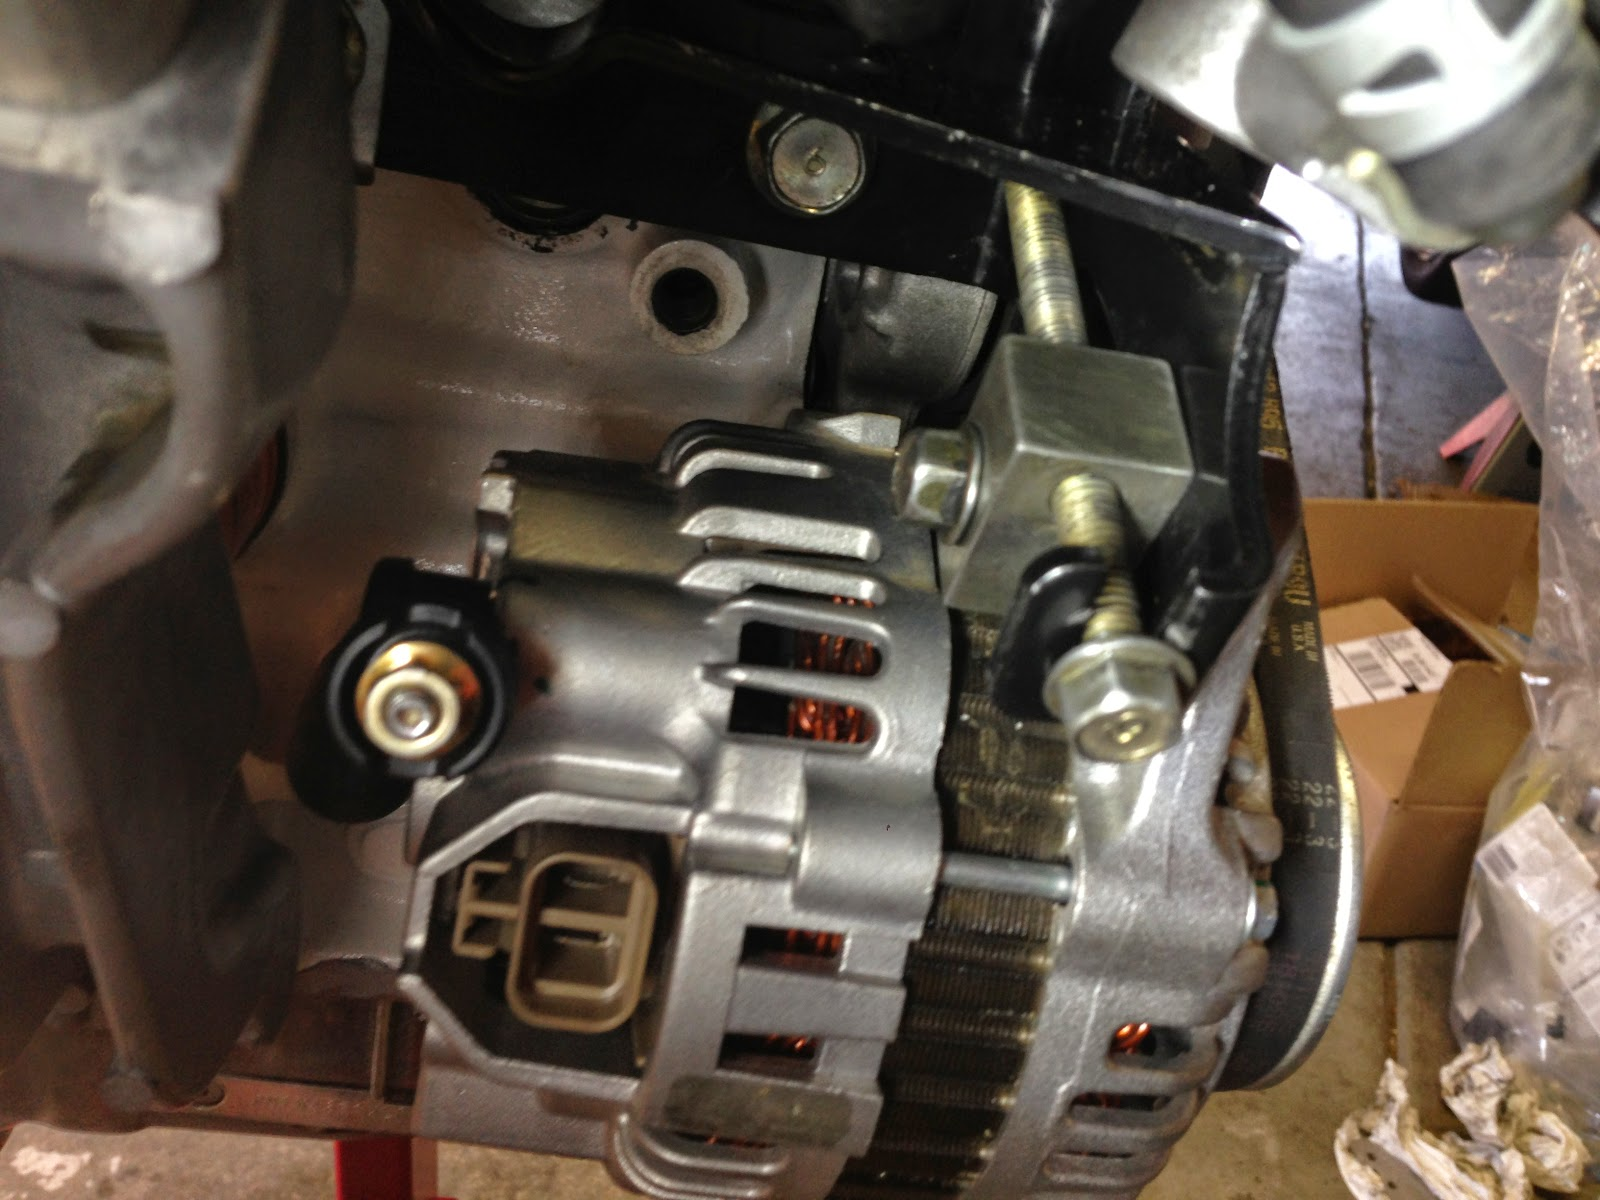 A Newbies Adventures In Racing Lessons Learned Rebuilding 99 Miata Fuel Filter Location On Bolted Up The Attachment Points For Engine Hoist